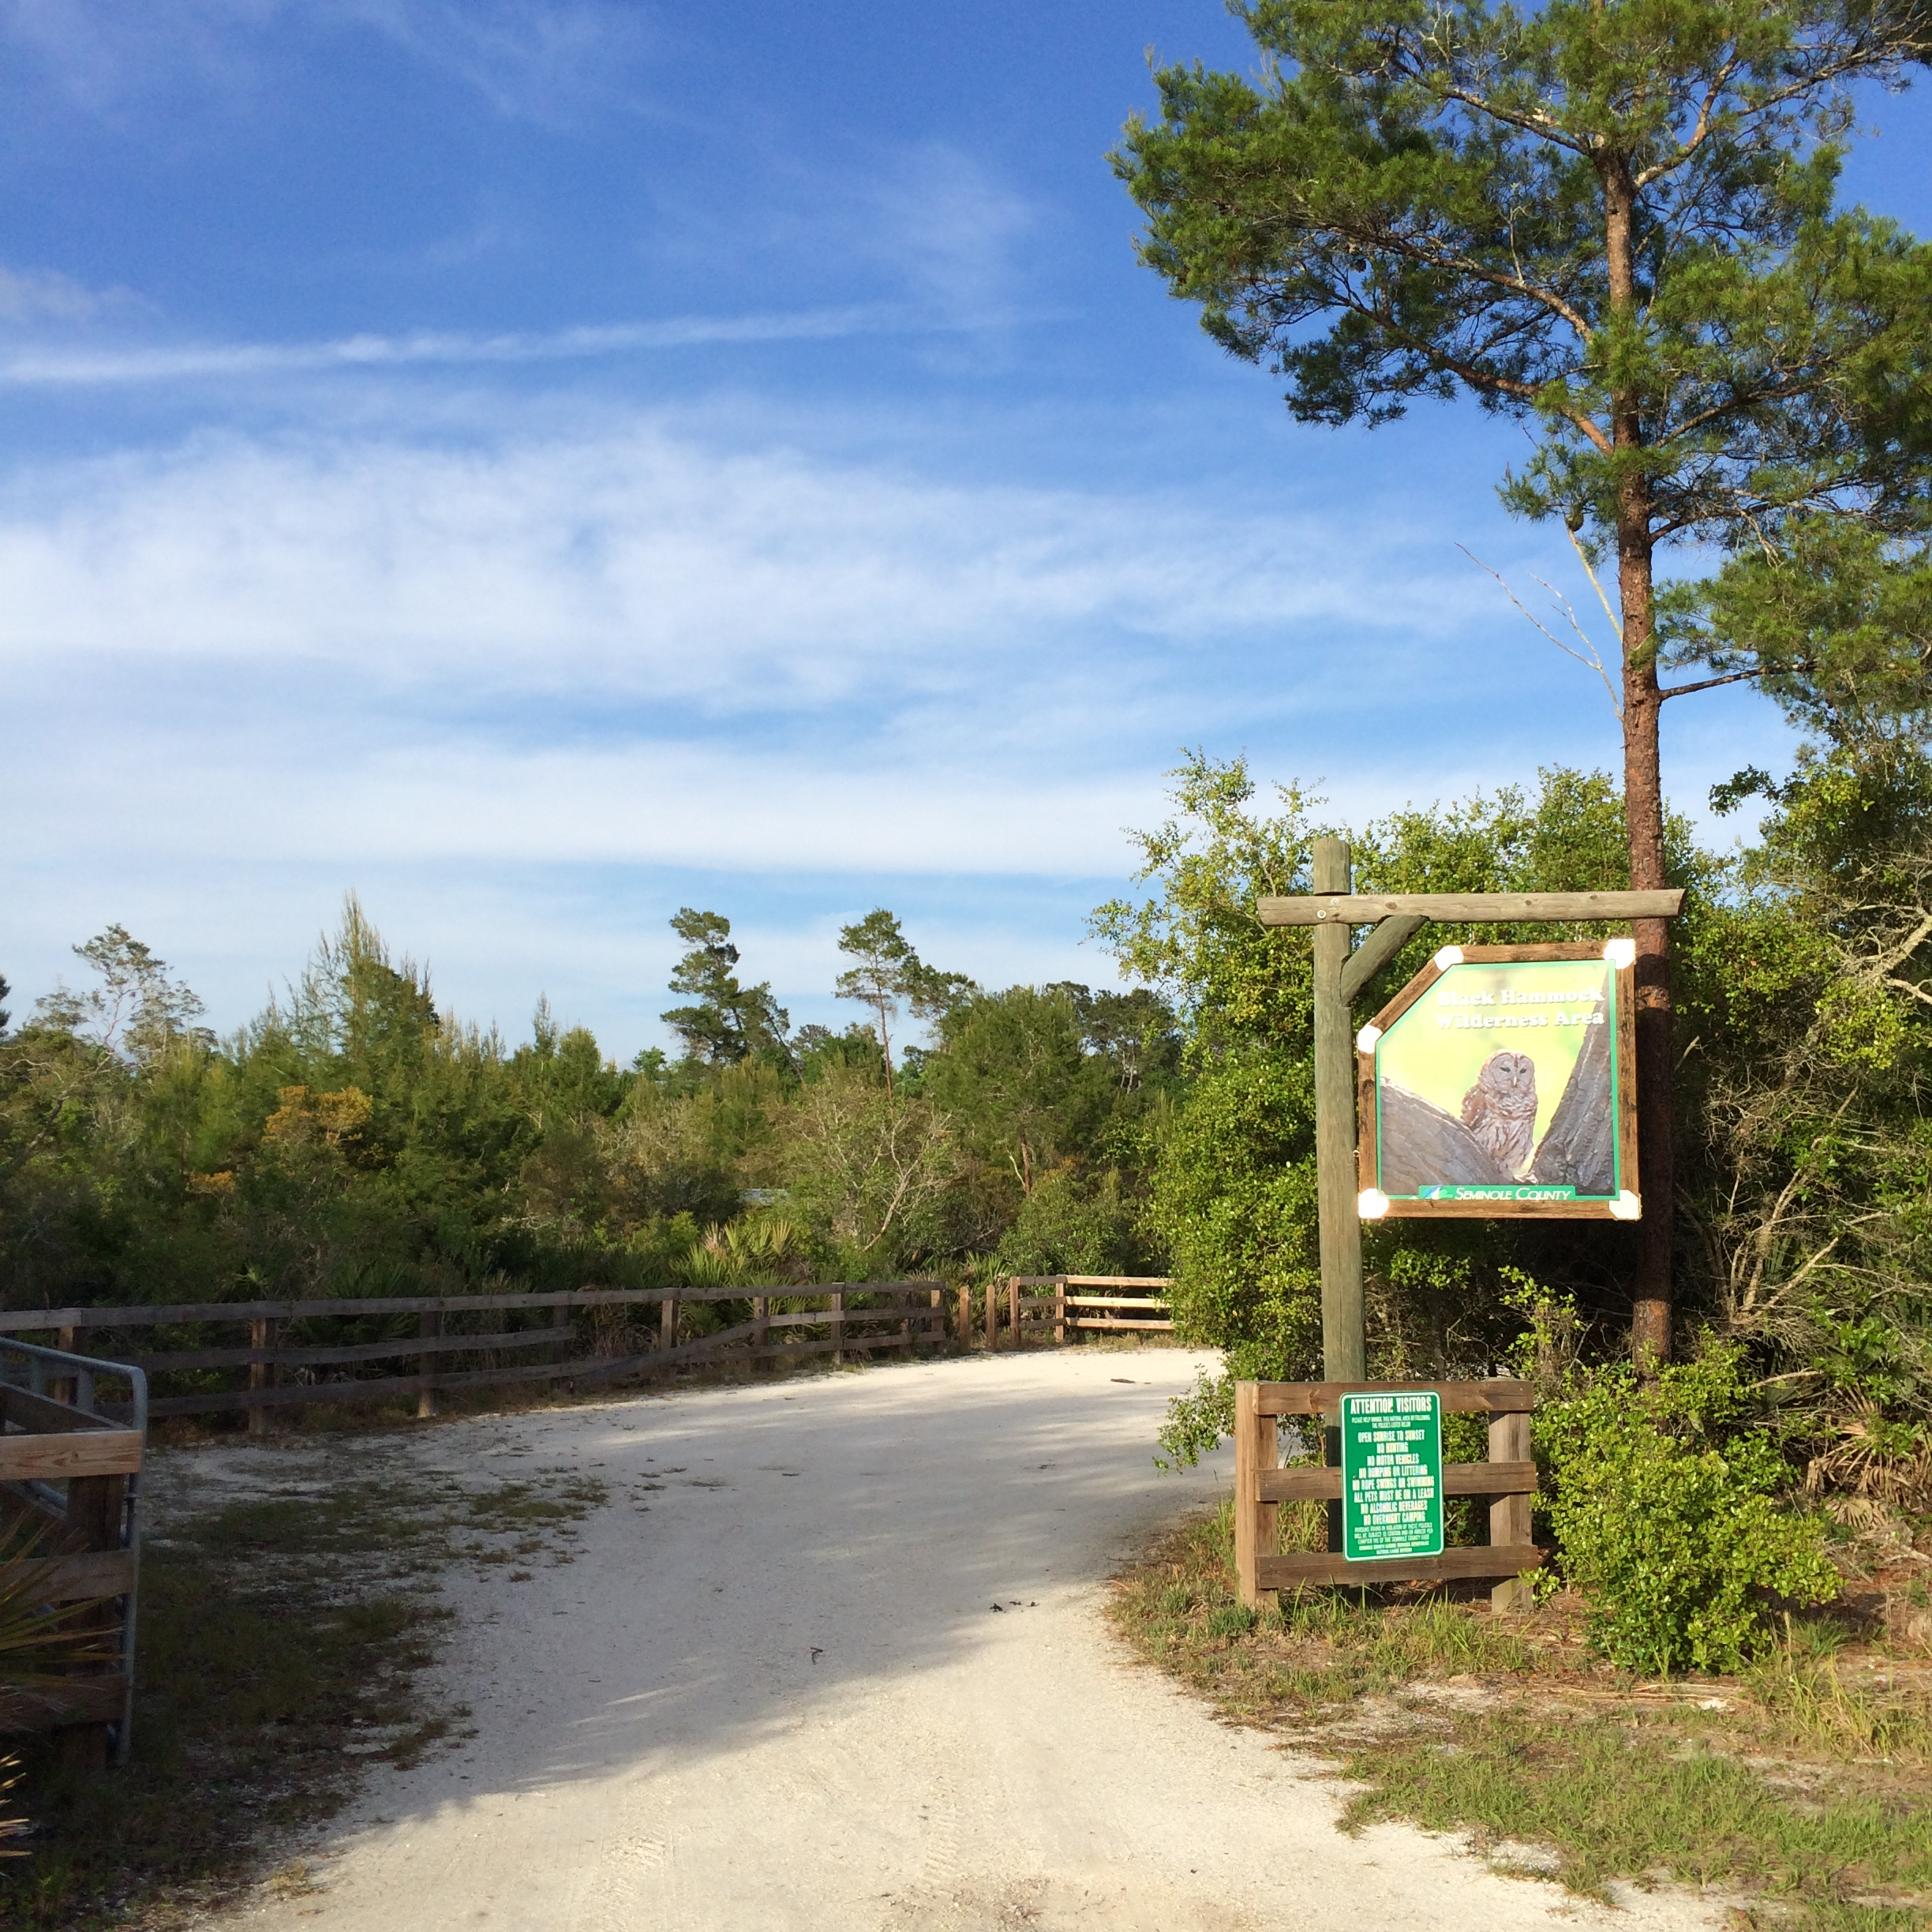 i got to the trail around 4 30 pm and took a look at the trail head map  looked like a simple loop with lots of different scenic areas  hiking black hammock wilderness florida   kylediditagain  rh   kylediditagain wordpress